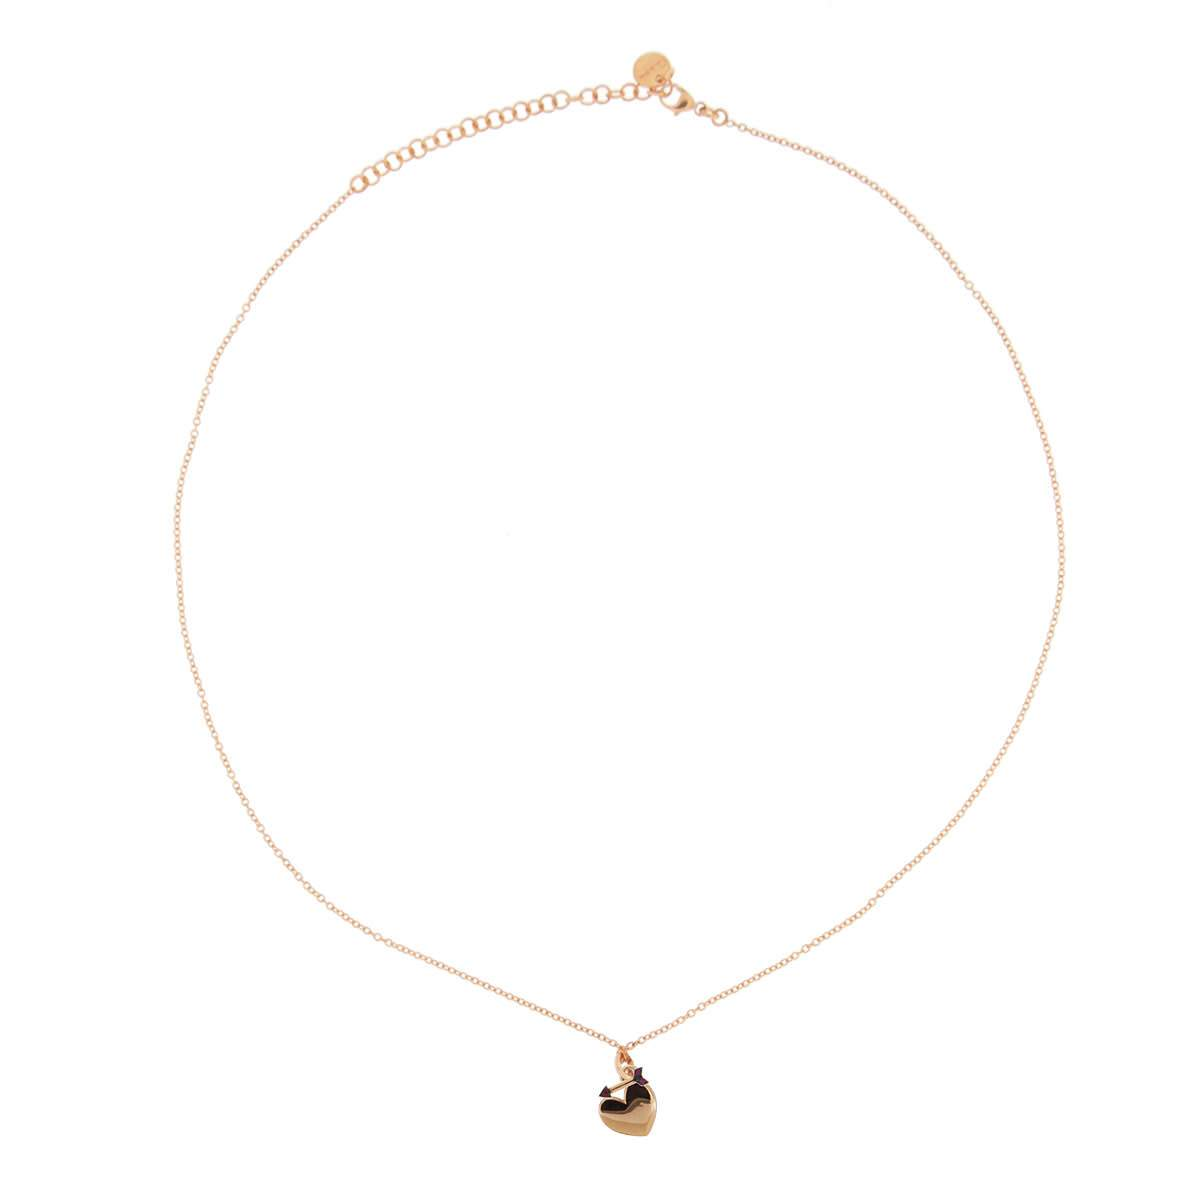 Chokers - Rose Gold Chain Choker with rounded pendant and Micro Zircons - Heart/Arrow - 1 | Rue des Mille